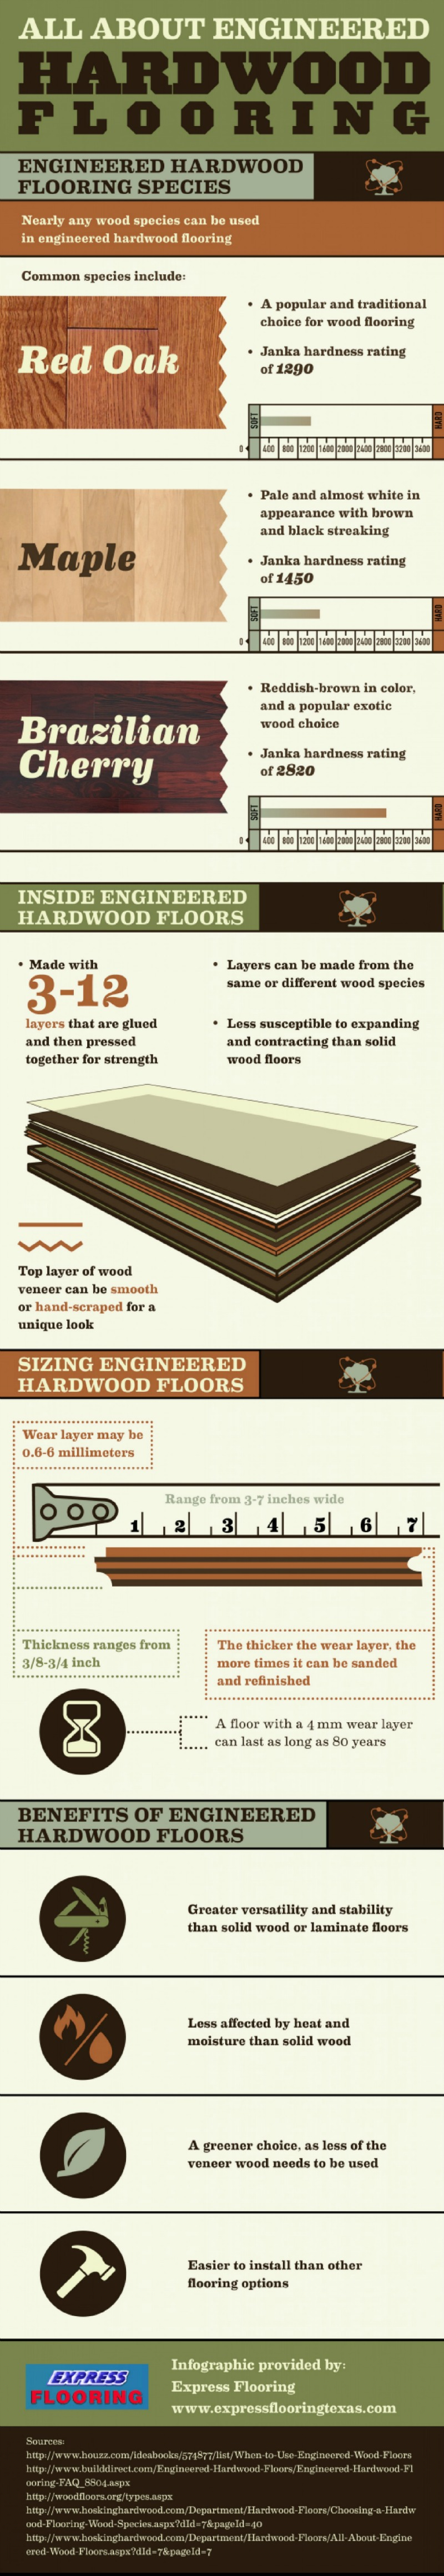 all-about-engineered-hardwood-flooring